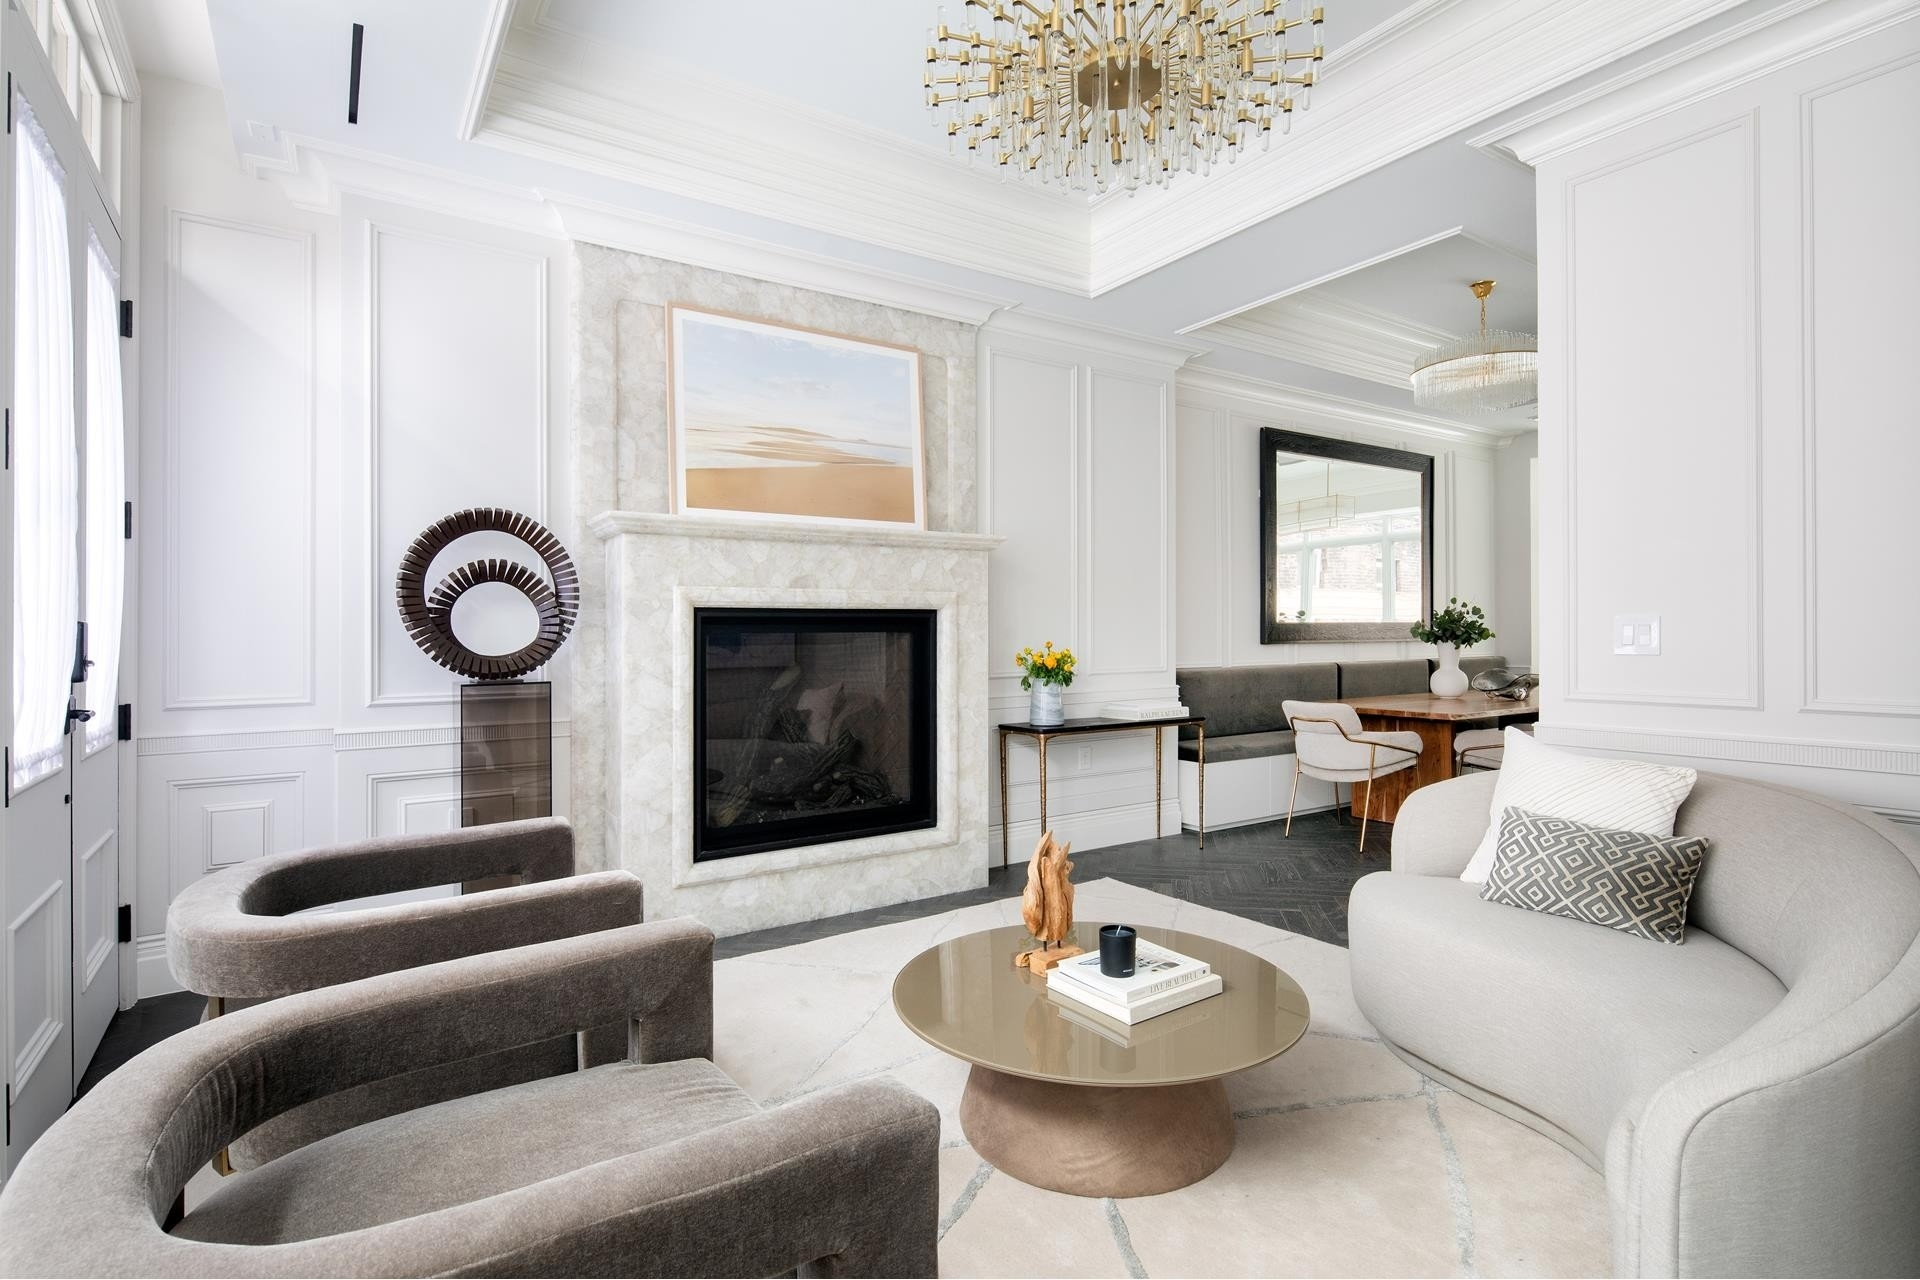 2. Single Family Townhouse for Sale at 50 HICKS ST , TH Brooklyn Heights, Brooklyn, NY 11201